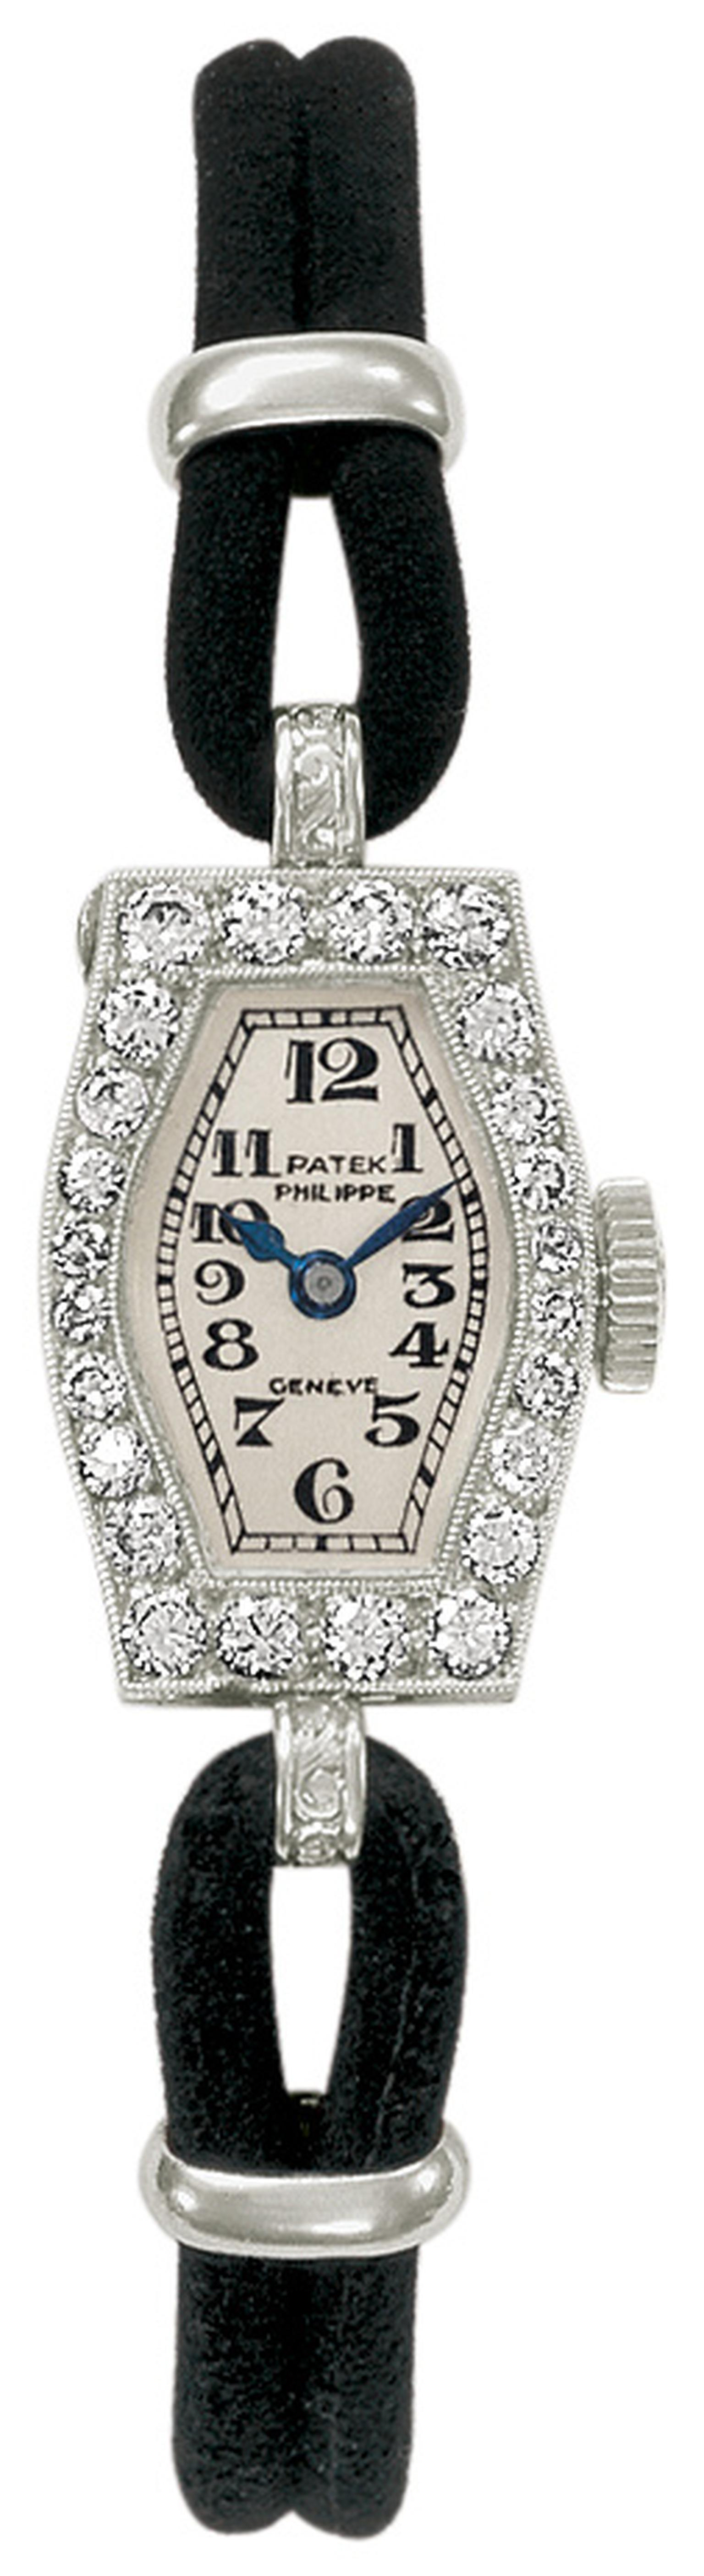 Patek-Philippe-P0587_a_100_collection-1925-40.jpg